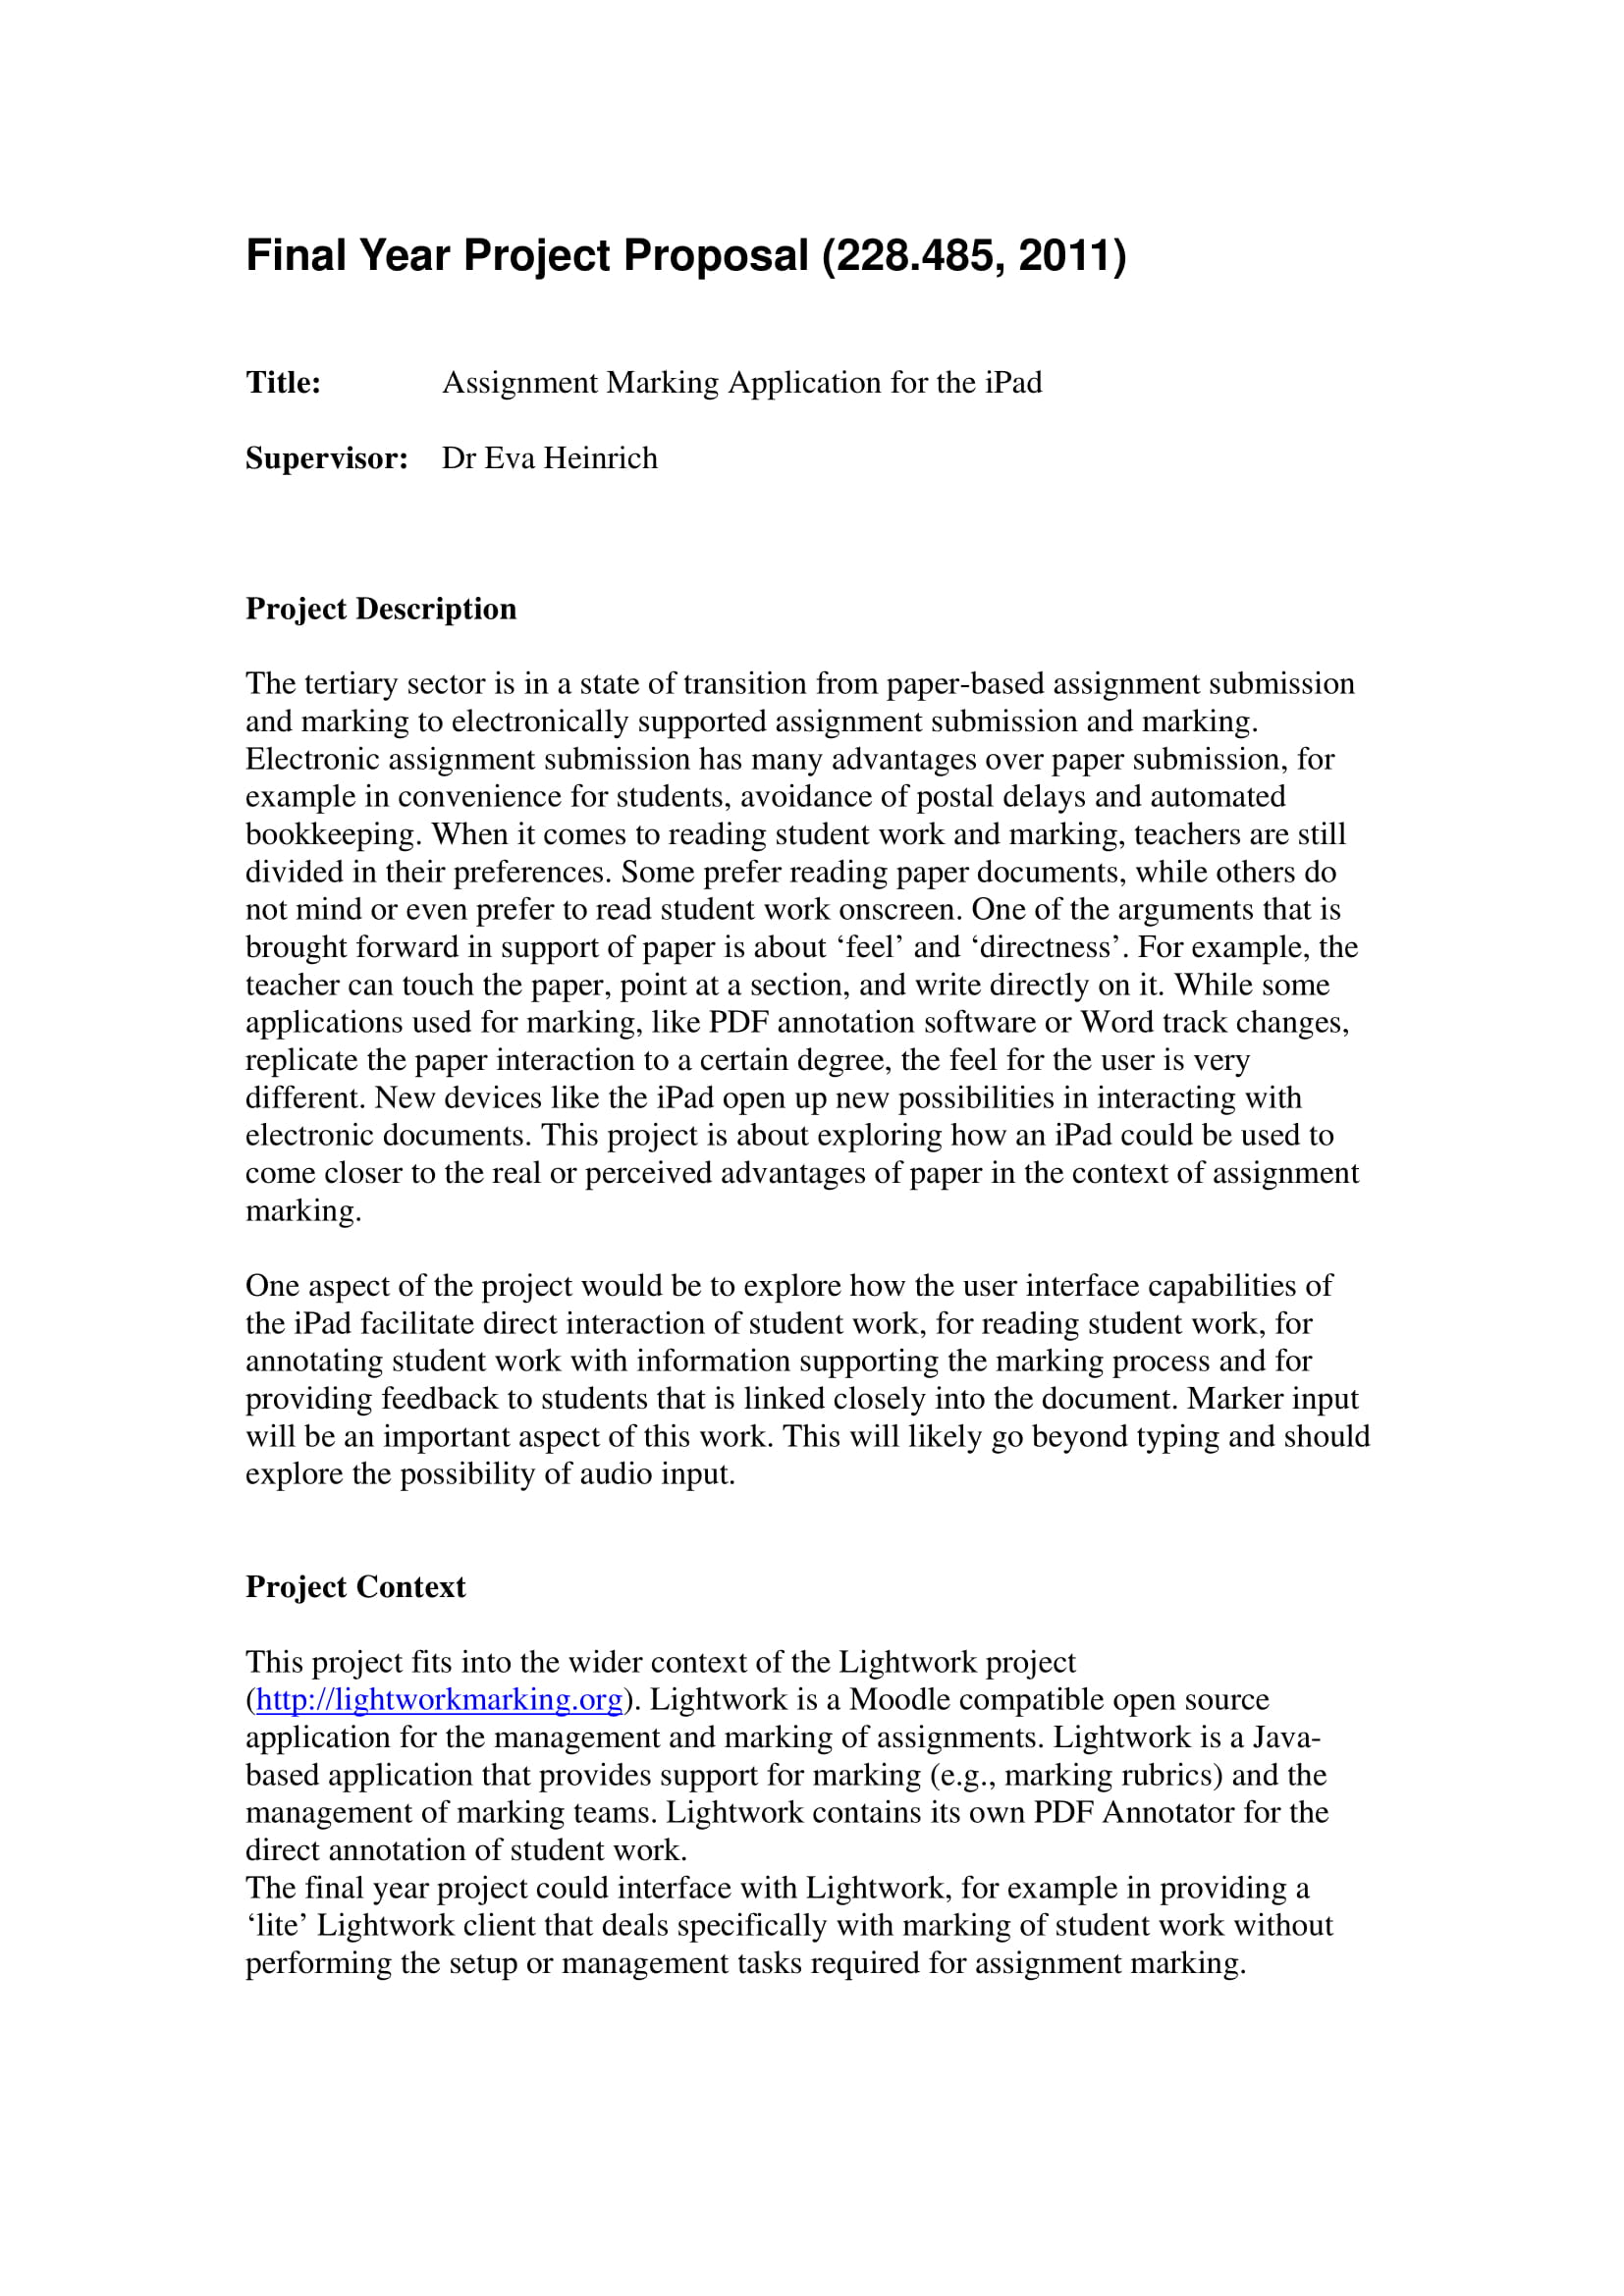 comprehensive final year project proposal example 1